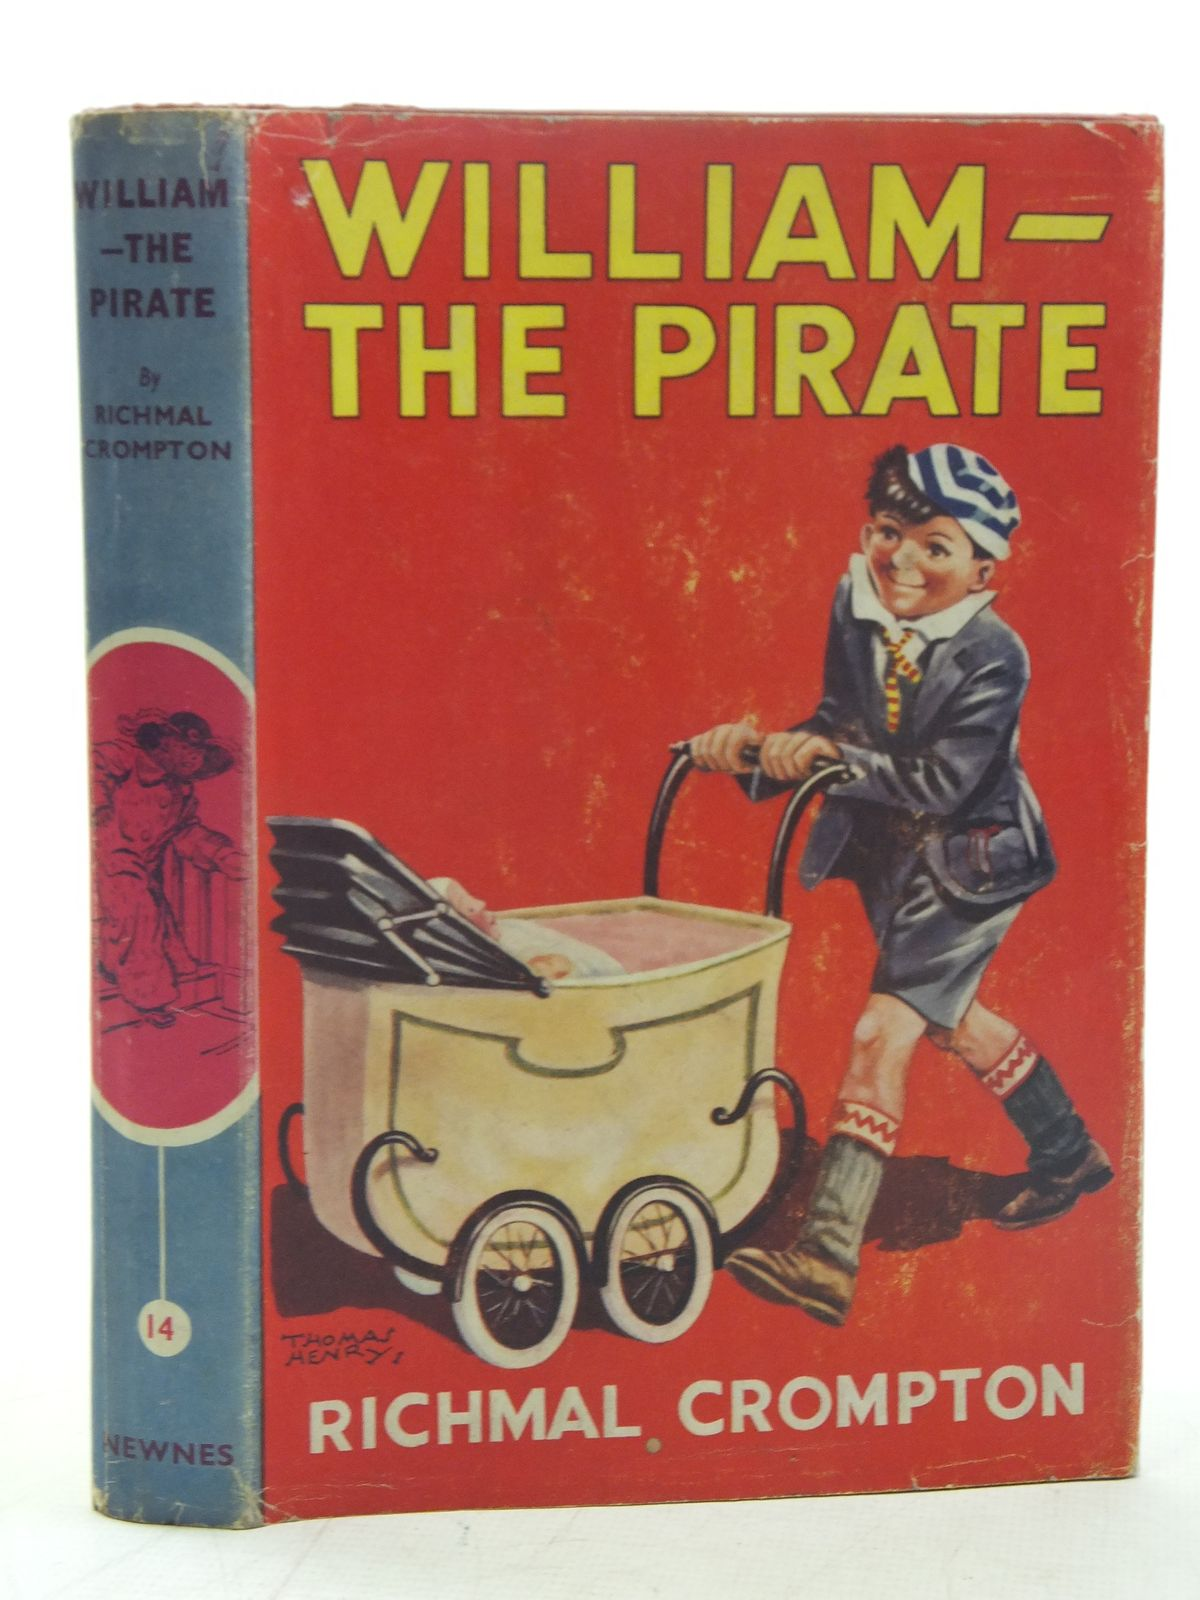 Cover of WILLIAM THE PIRATE by Richmal Crompton